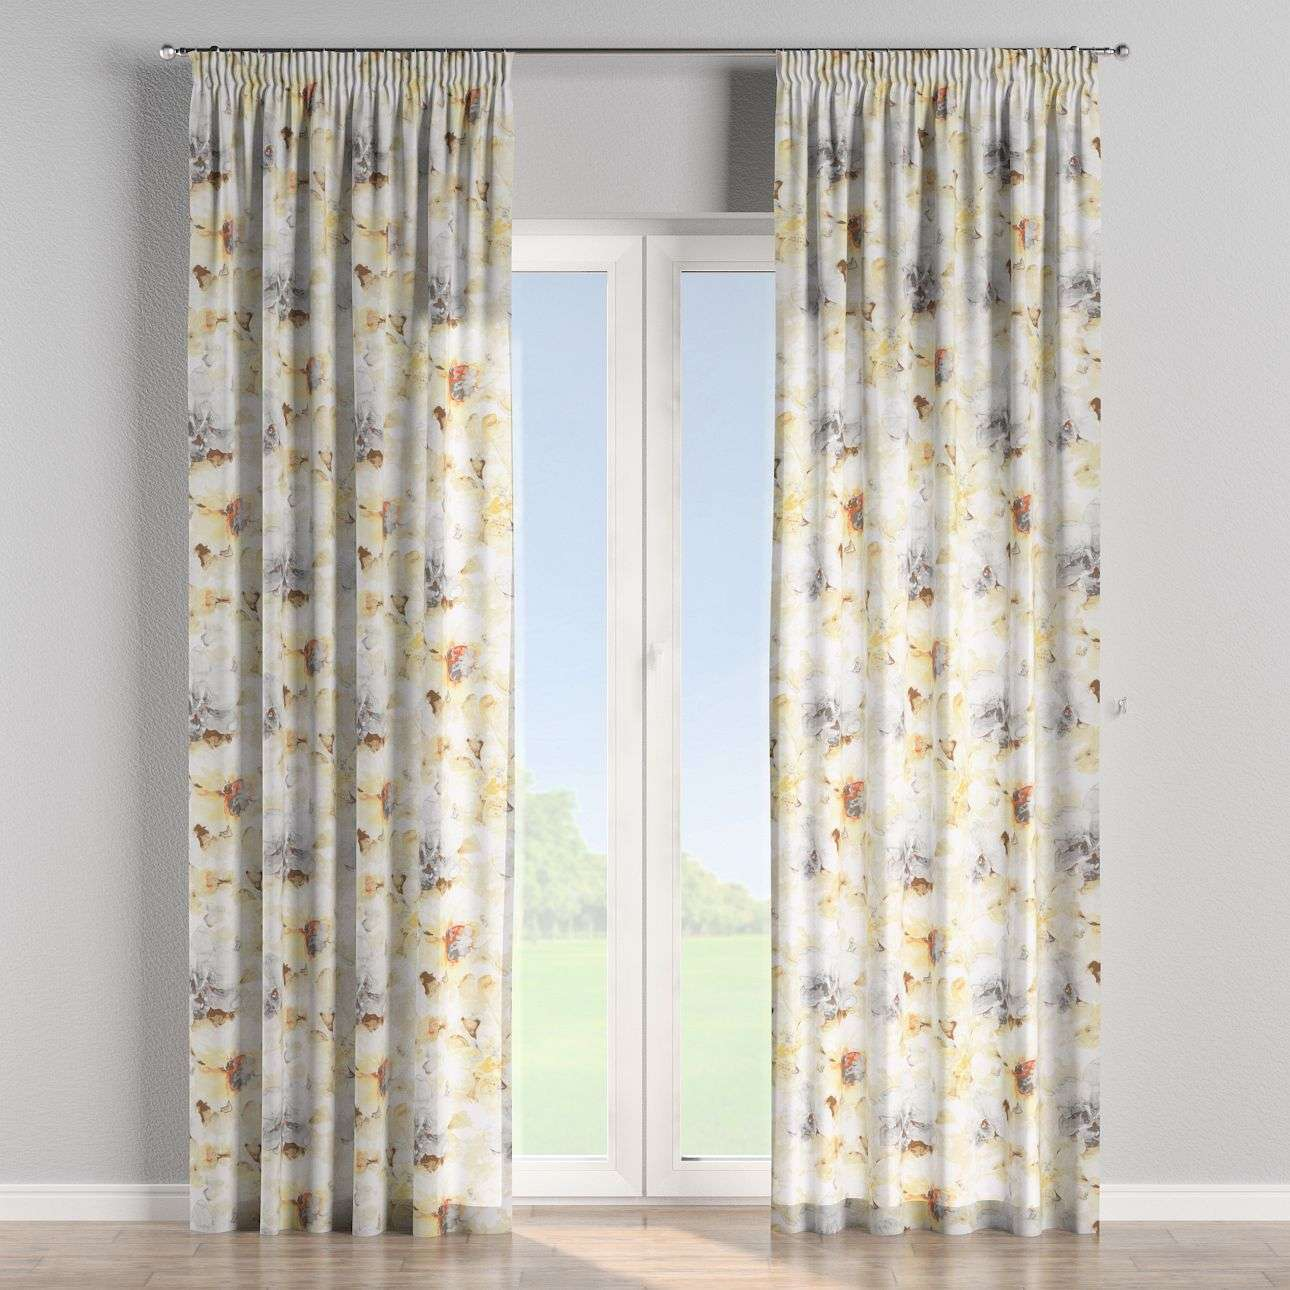 Pencil pleat curtains 130 x 260 cm (51 x 102 inch) in collection Acapulco, fabric: 141-33